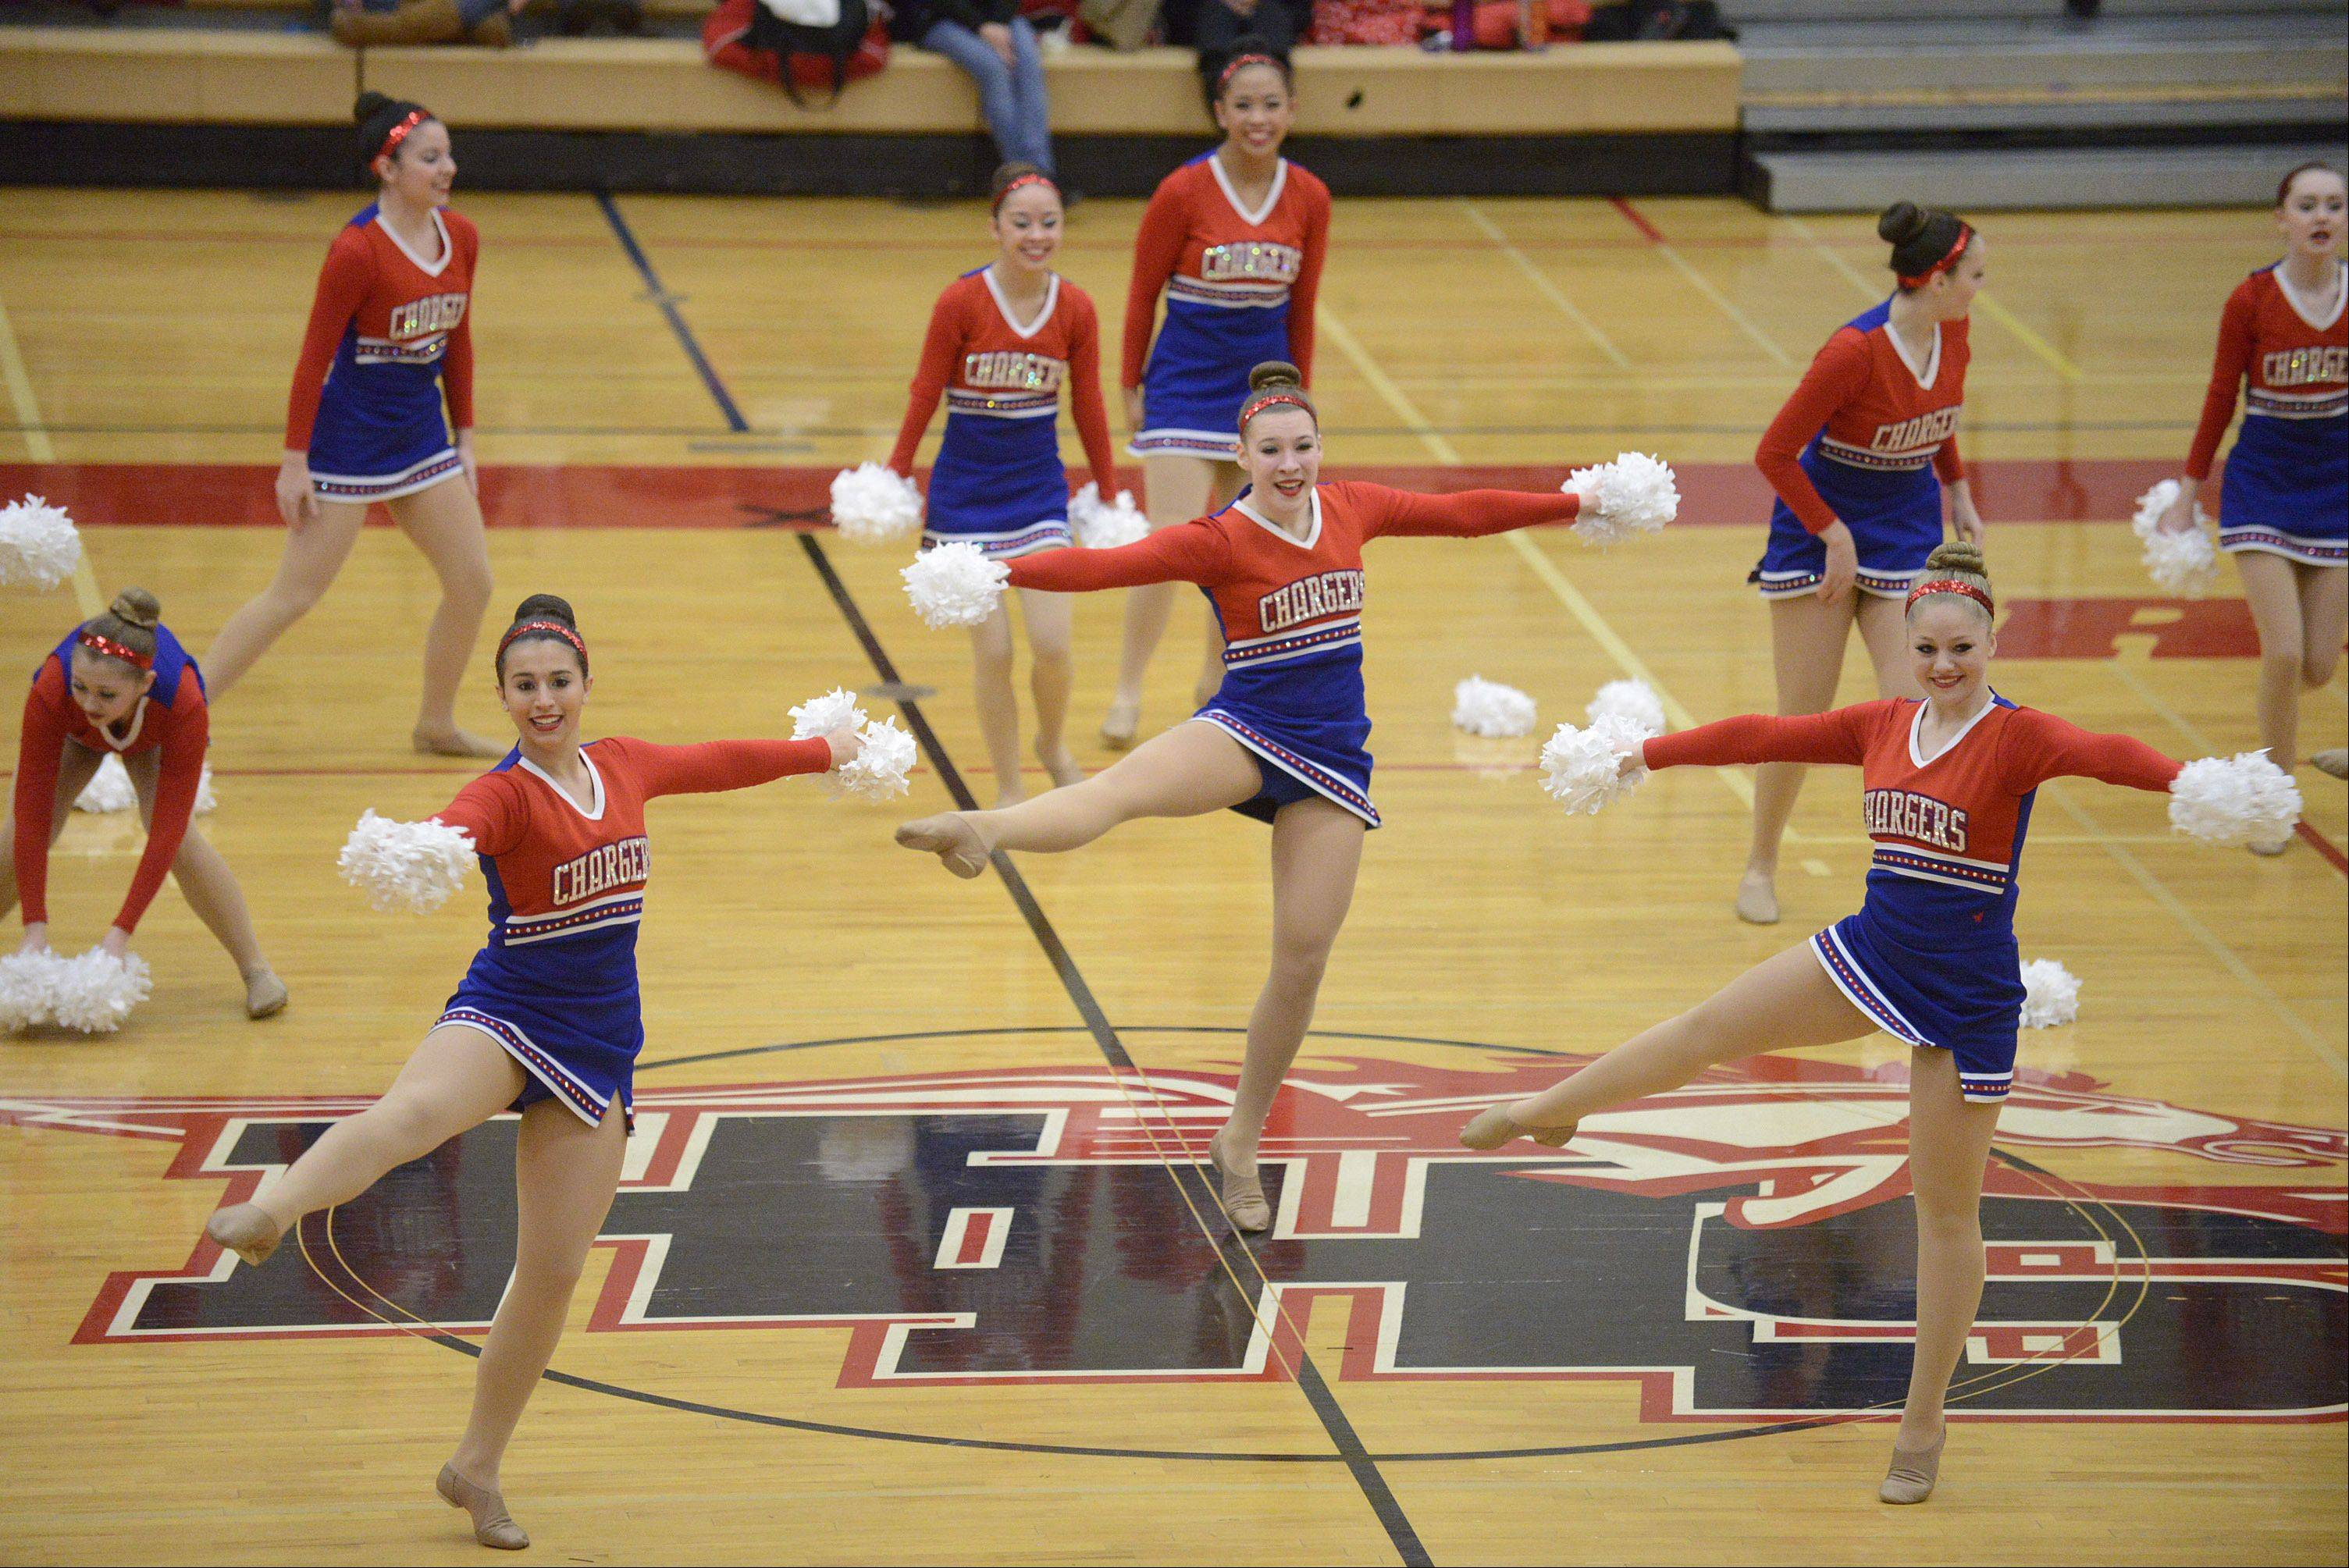 Dundee-Crown High School performs at the IHSA 3A competitive dance sectionals at Huntley High School on Saturday, January 25.